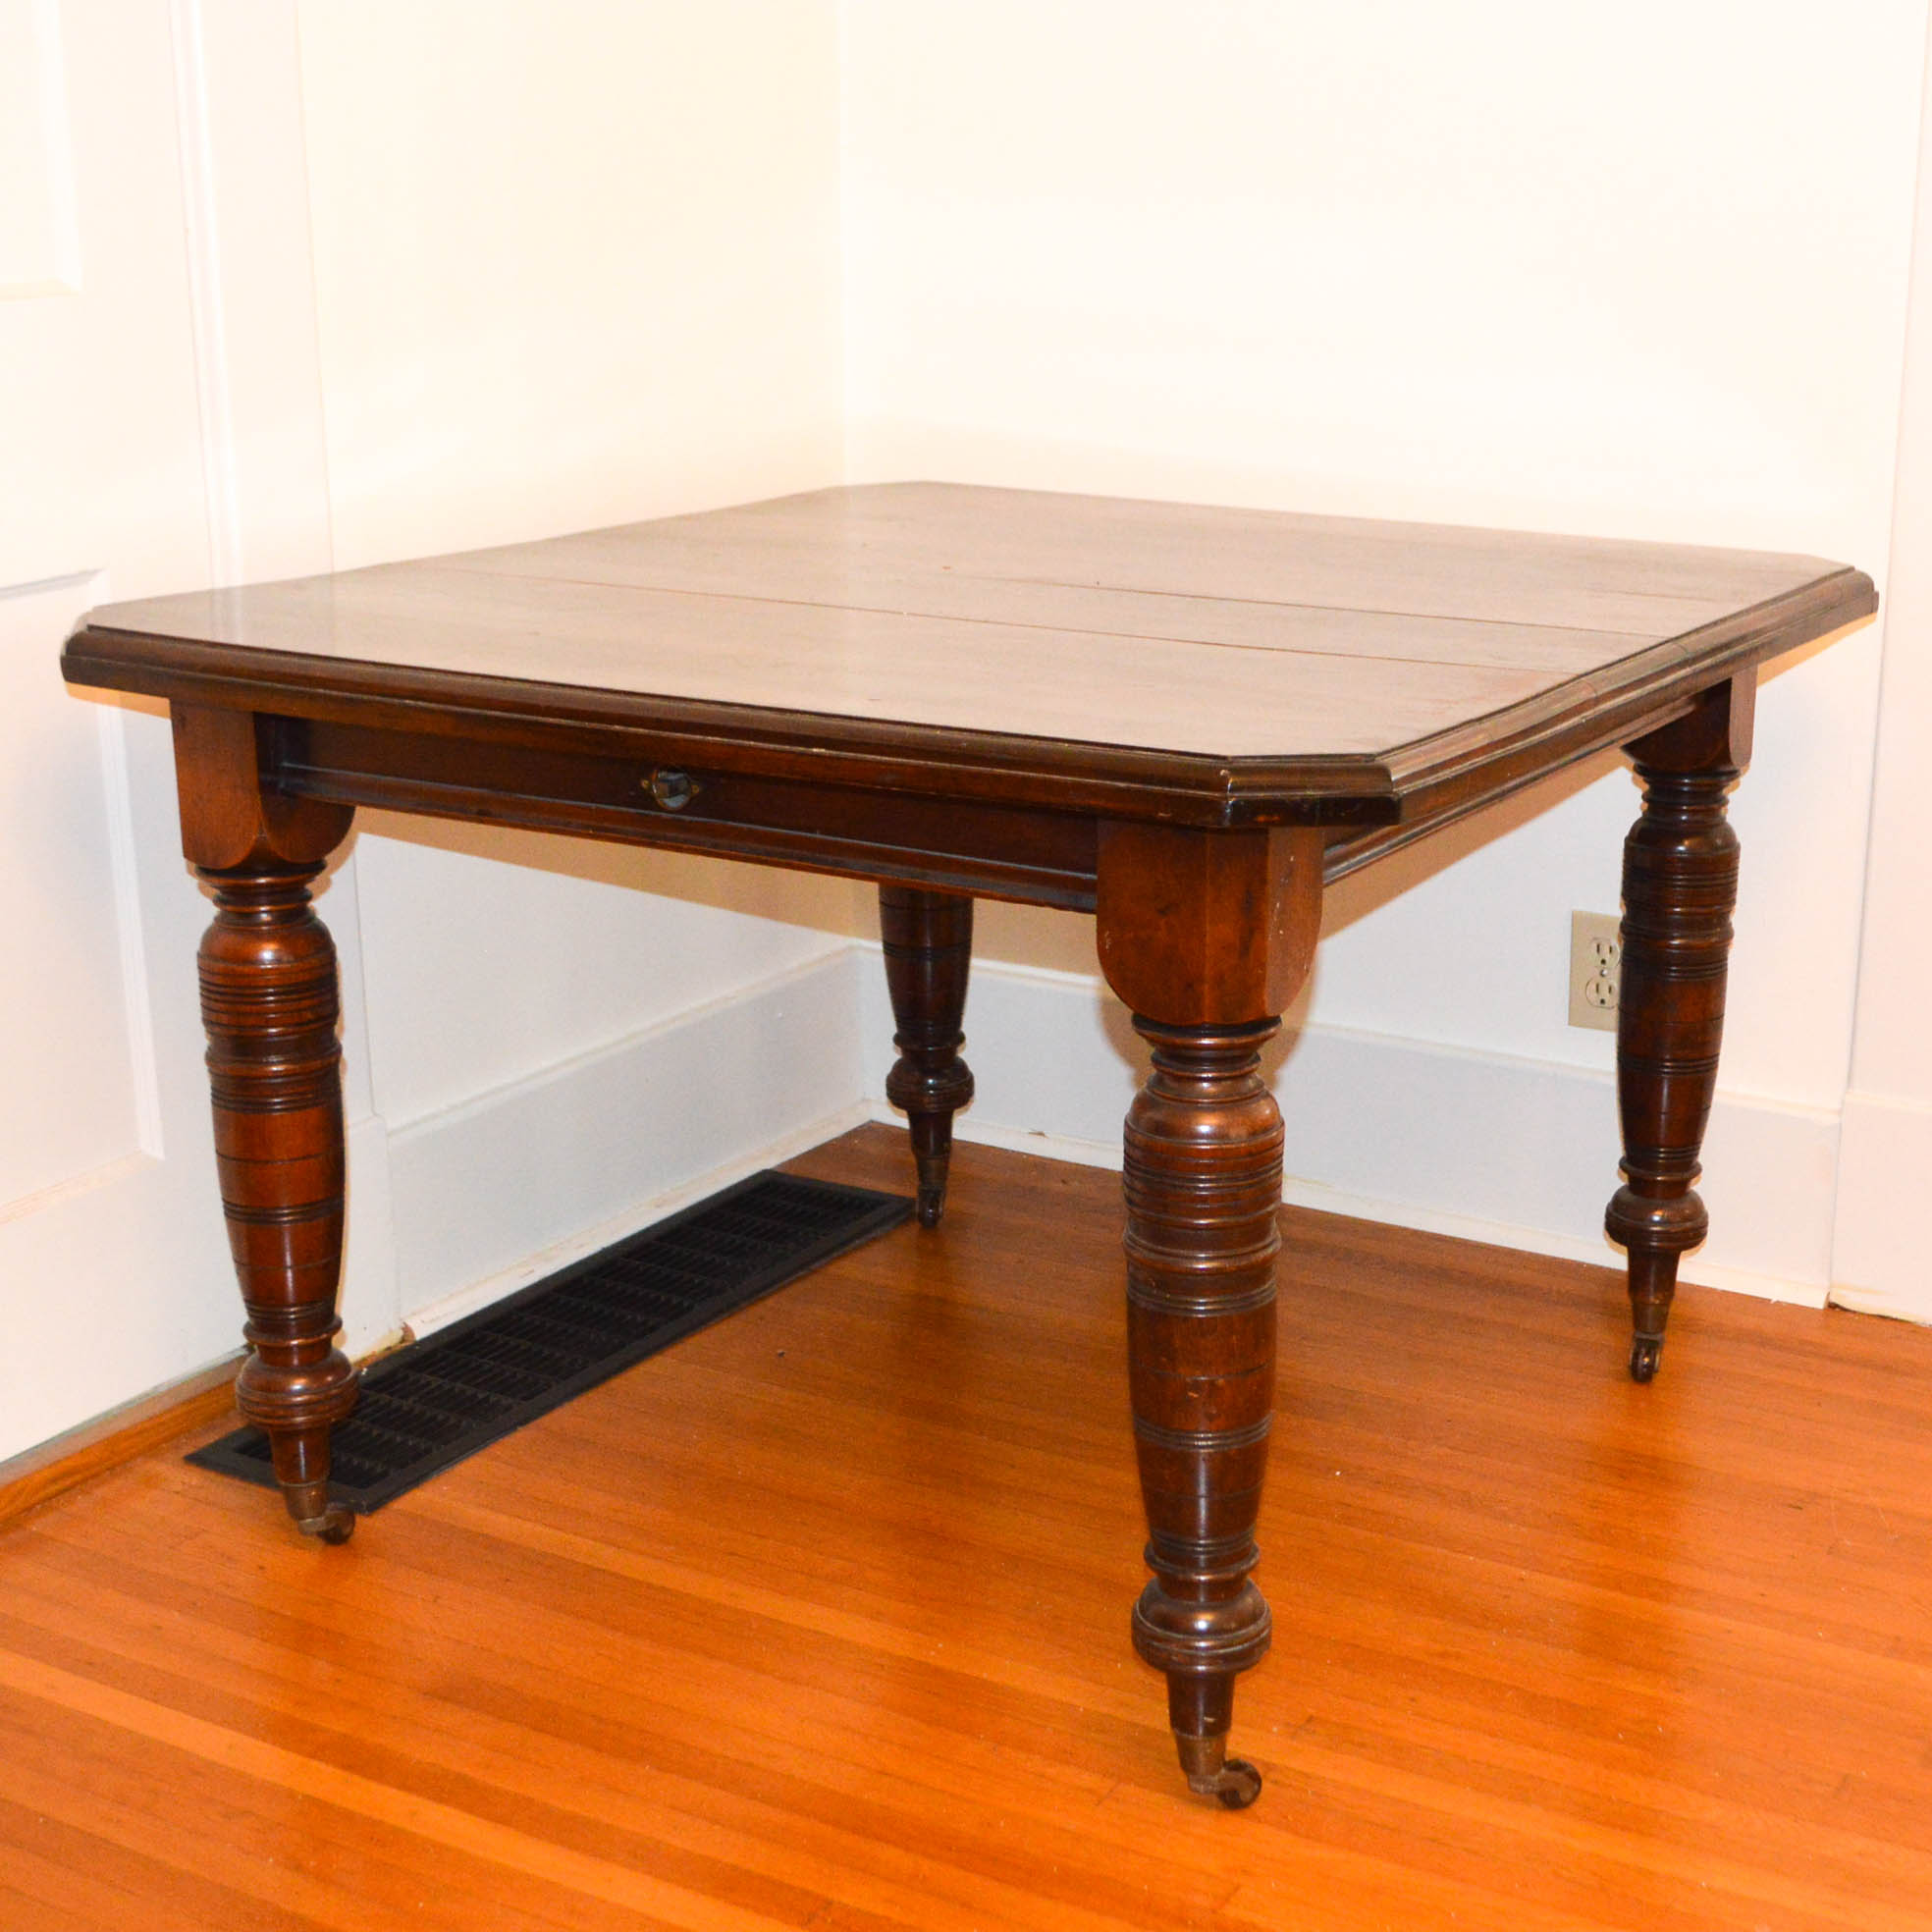 antique walnut dining table Antique Walnut Dining Table With Crank Extension : EBTH antique walnut dining table